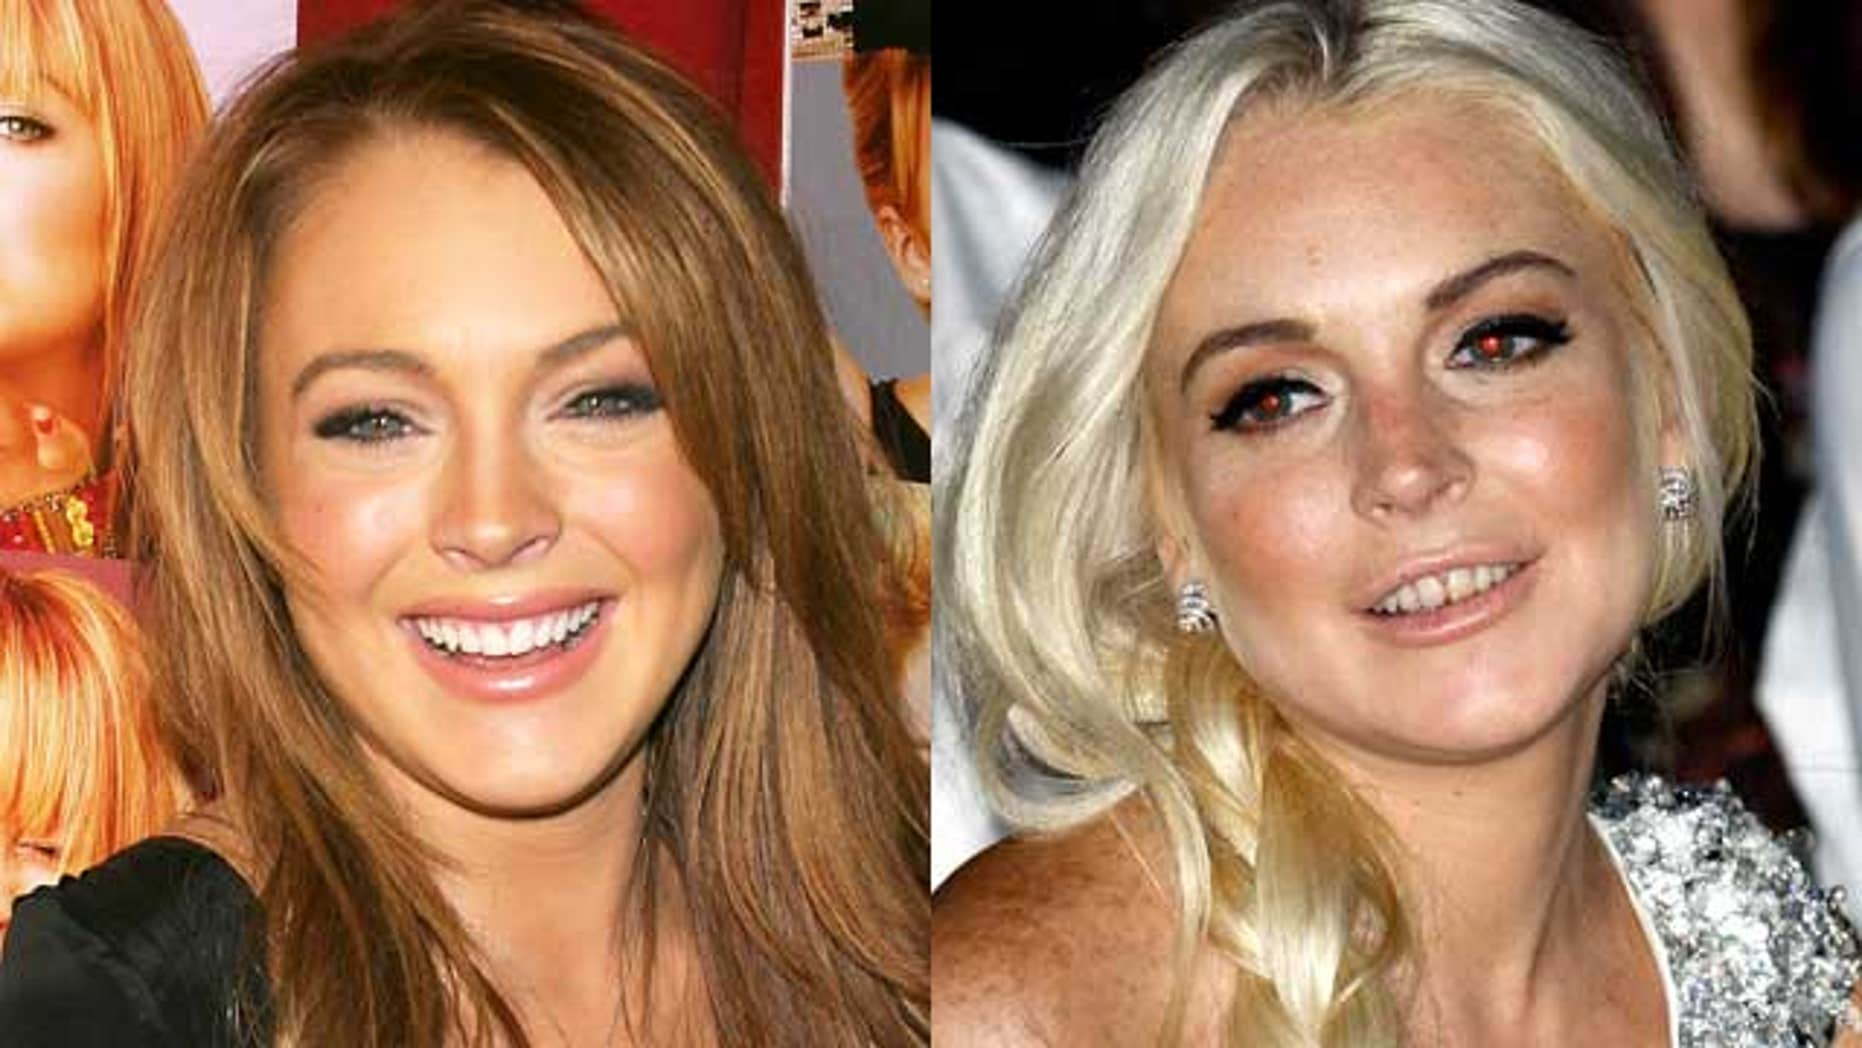 Lindsay Lohan in 2004 and 2011. (Reuters)